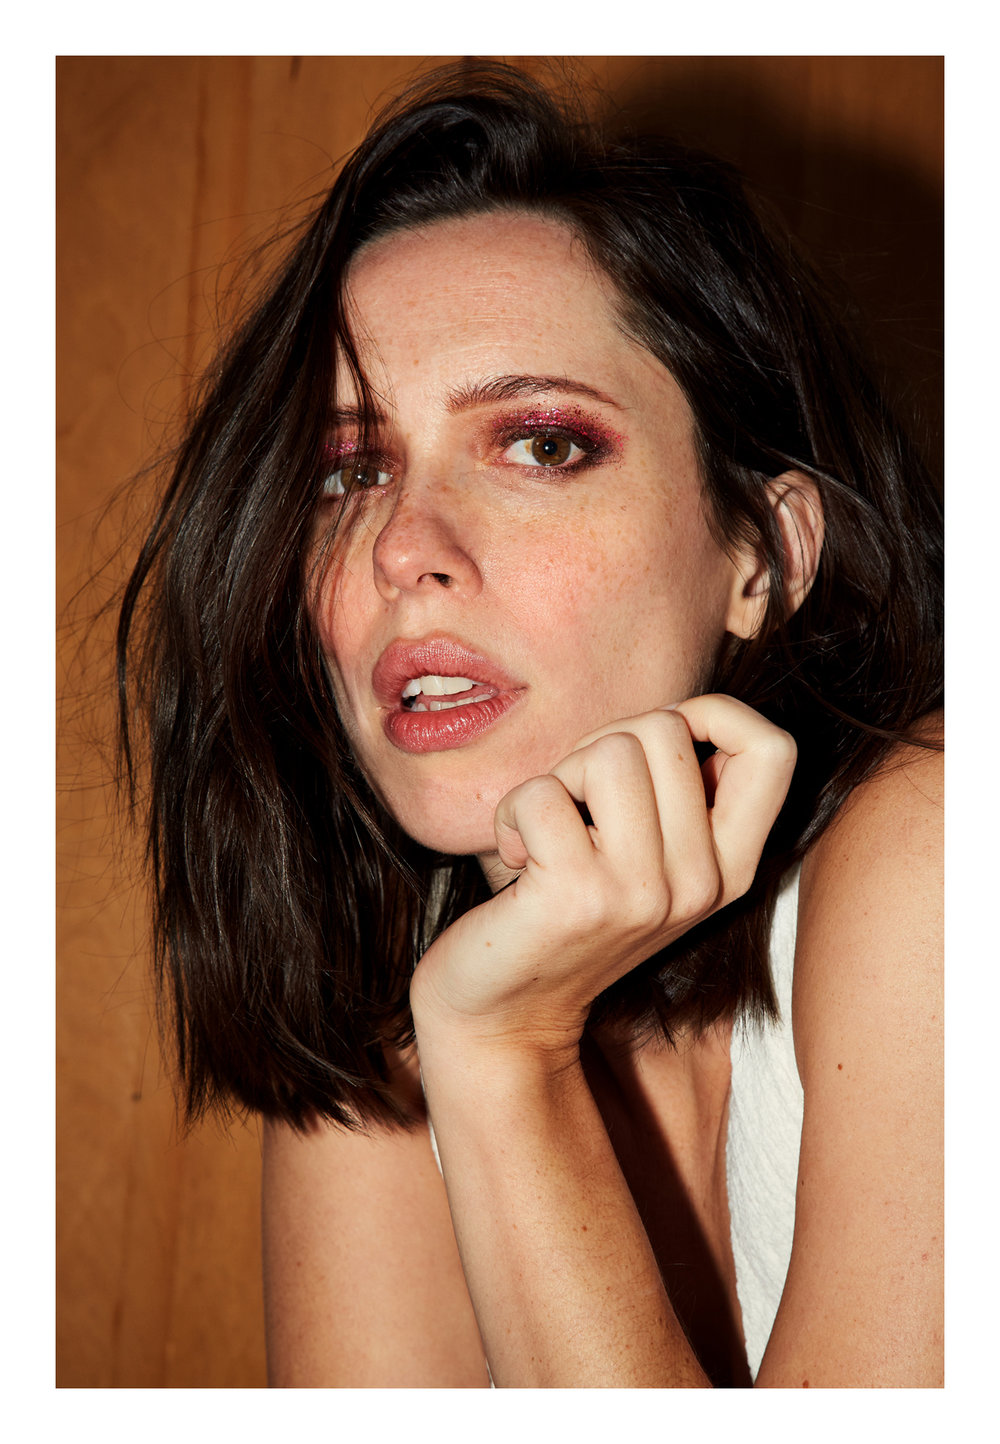 KATE OWEN | REBECCA HALL / PORTRAIT ACTRESS